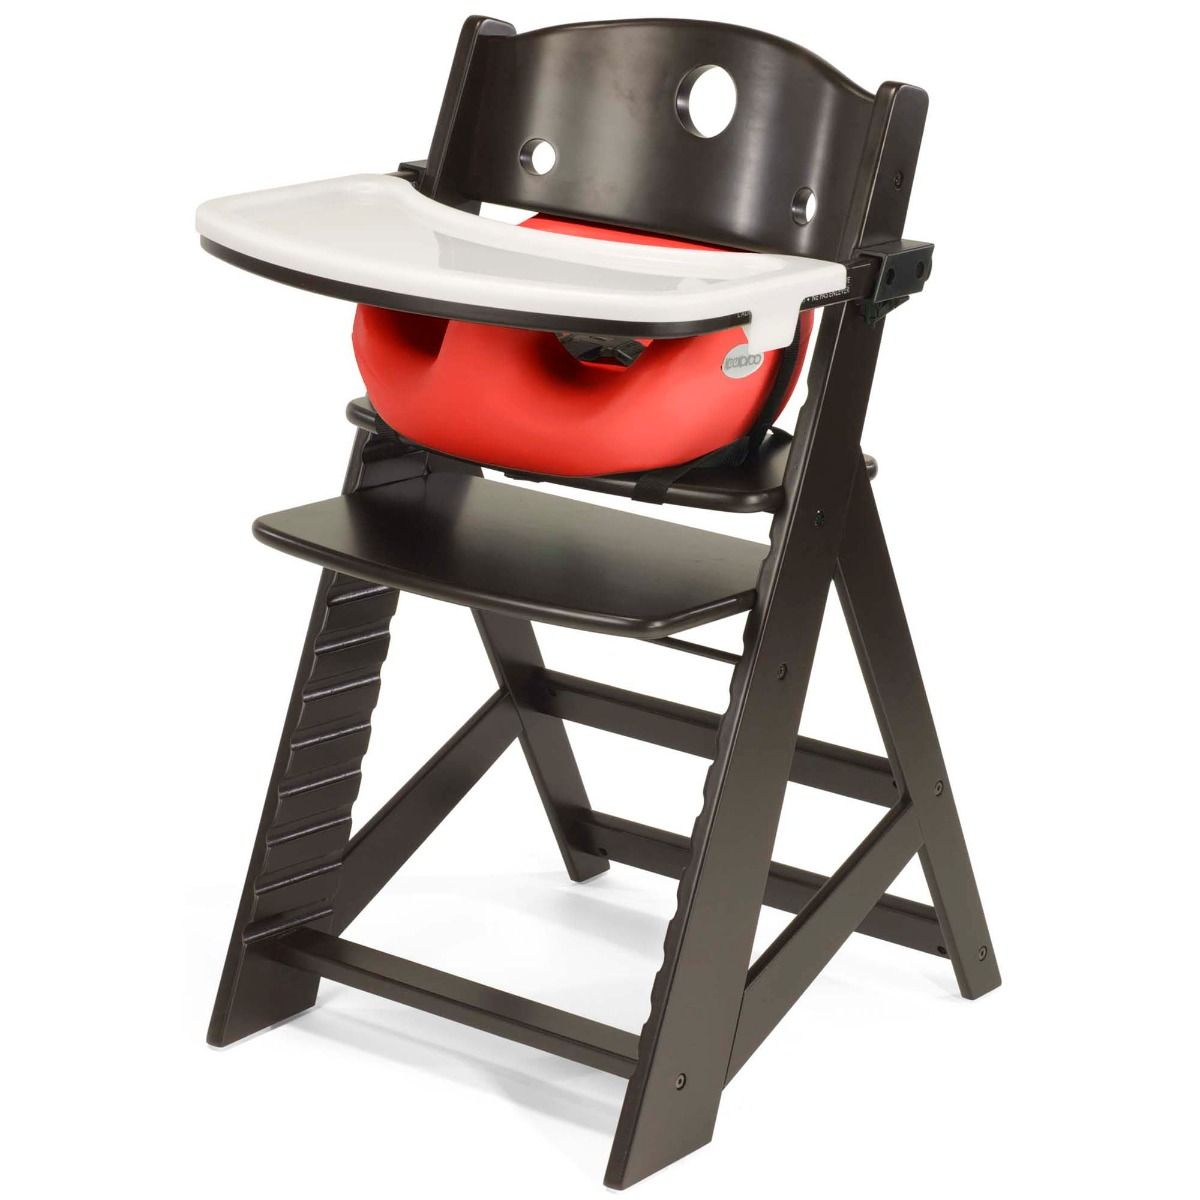 Keekaroo High Chair in Espresso with Infant Insert in Cherry Color